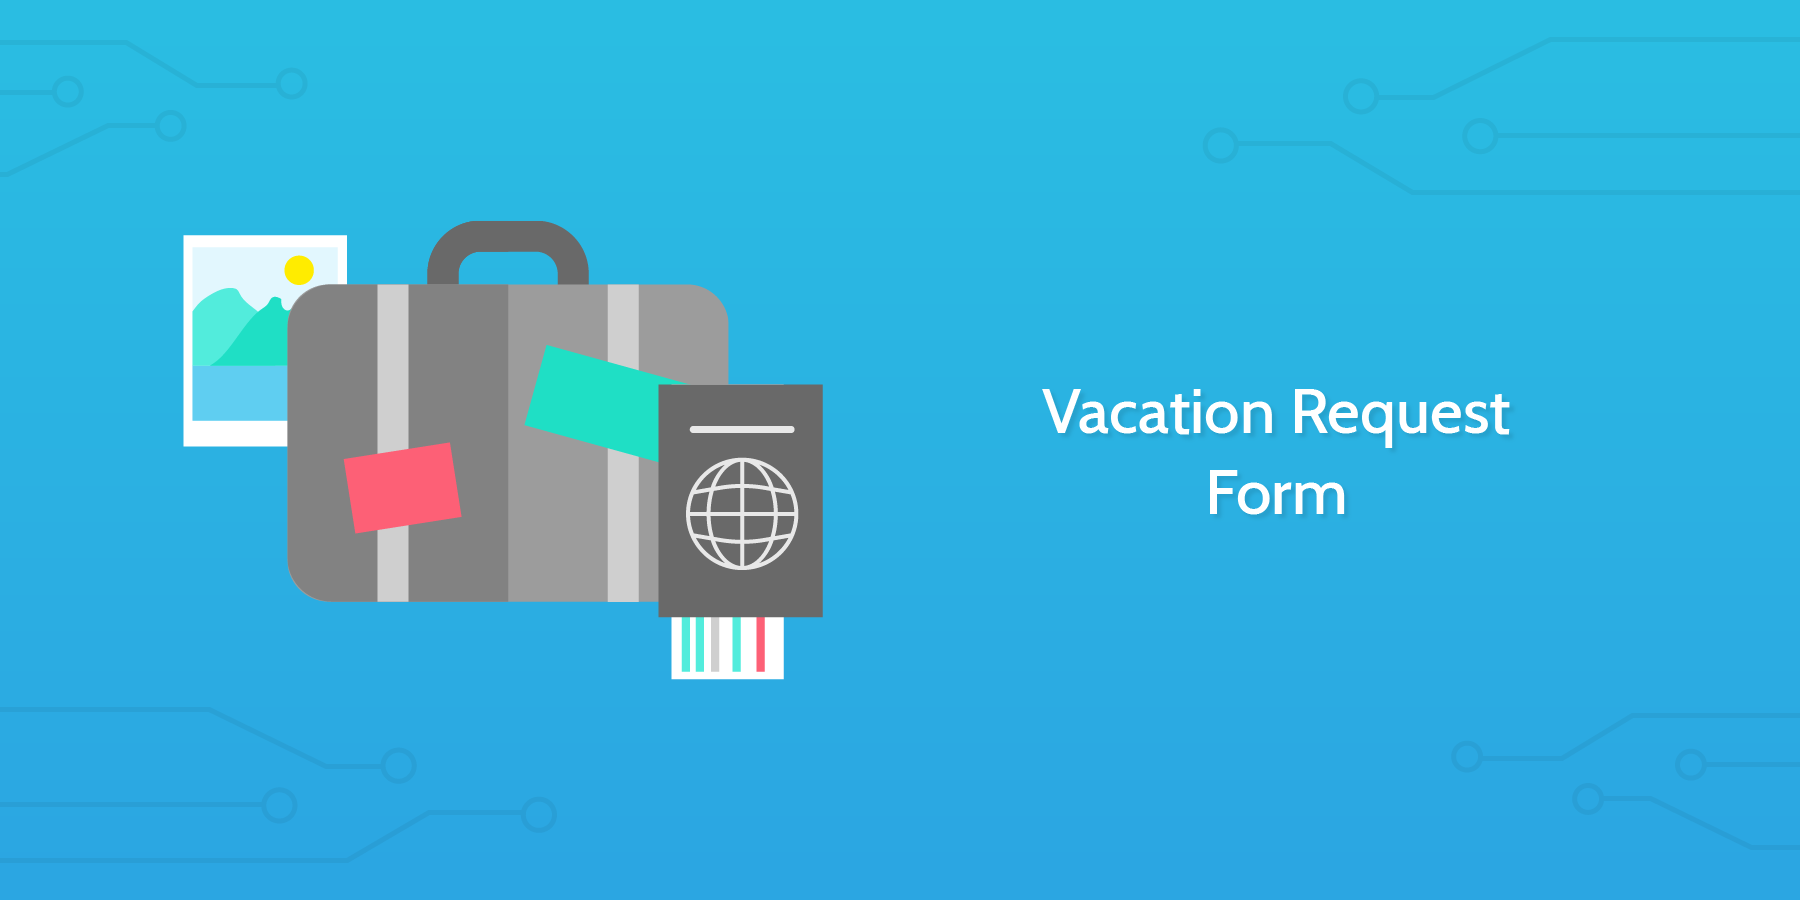 Introduction to the Vacation Request Form: